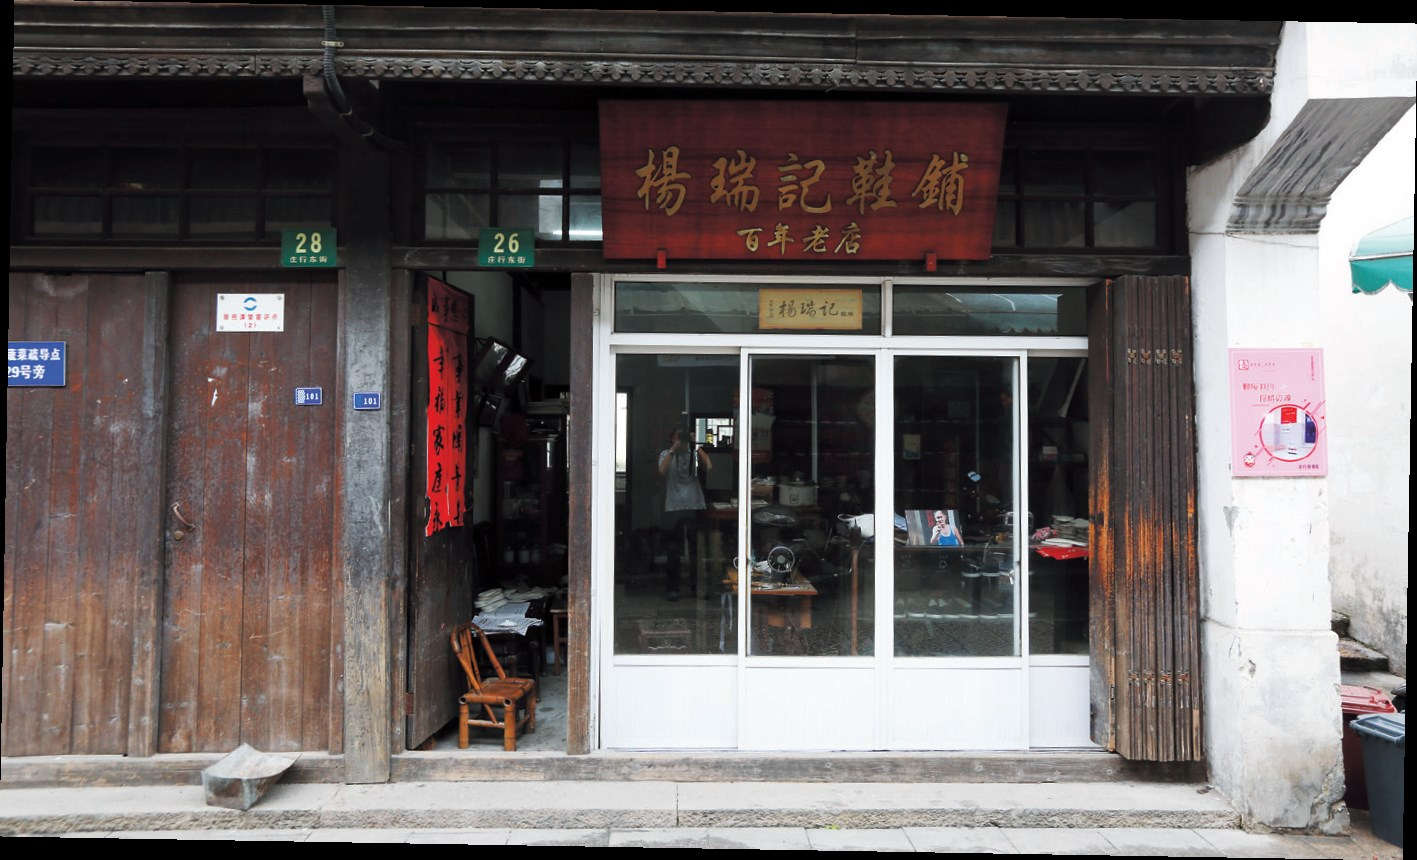 Yang Shenxi is actually younger than the building that houses his business. Most of the structures on the street were built during the Ming (1368-1644) and Qing (1644-1911) dynasties. His own shop was first opened by his grandfather more than a century ago.